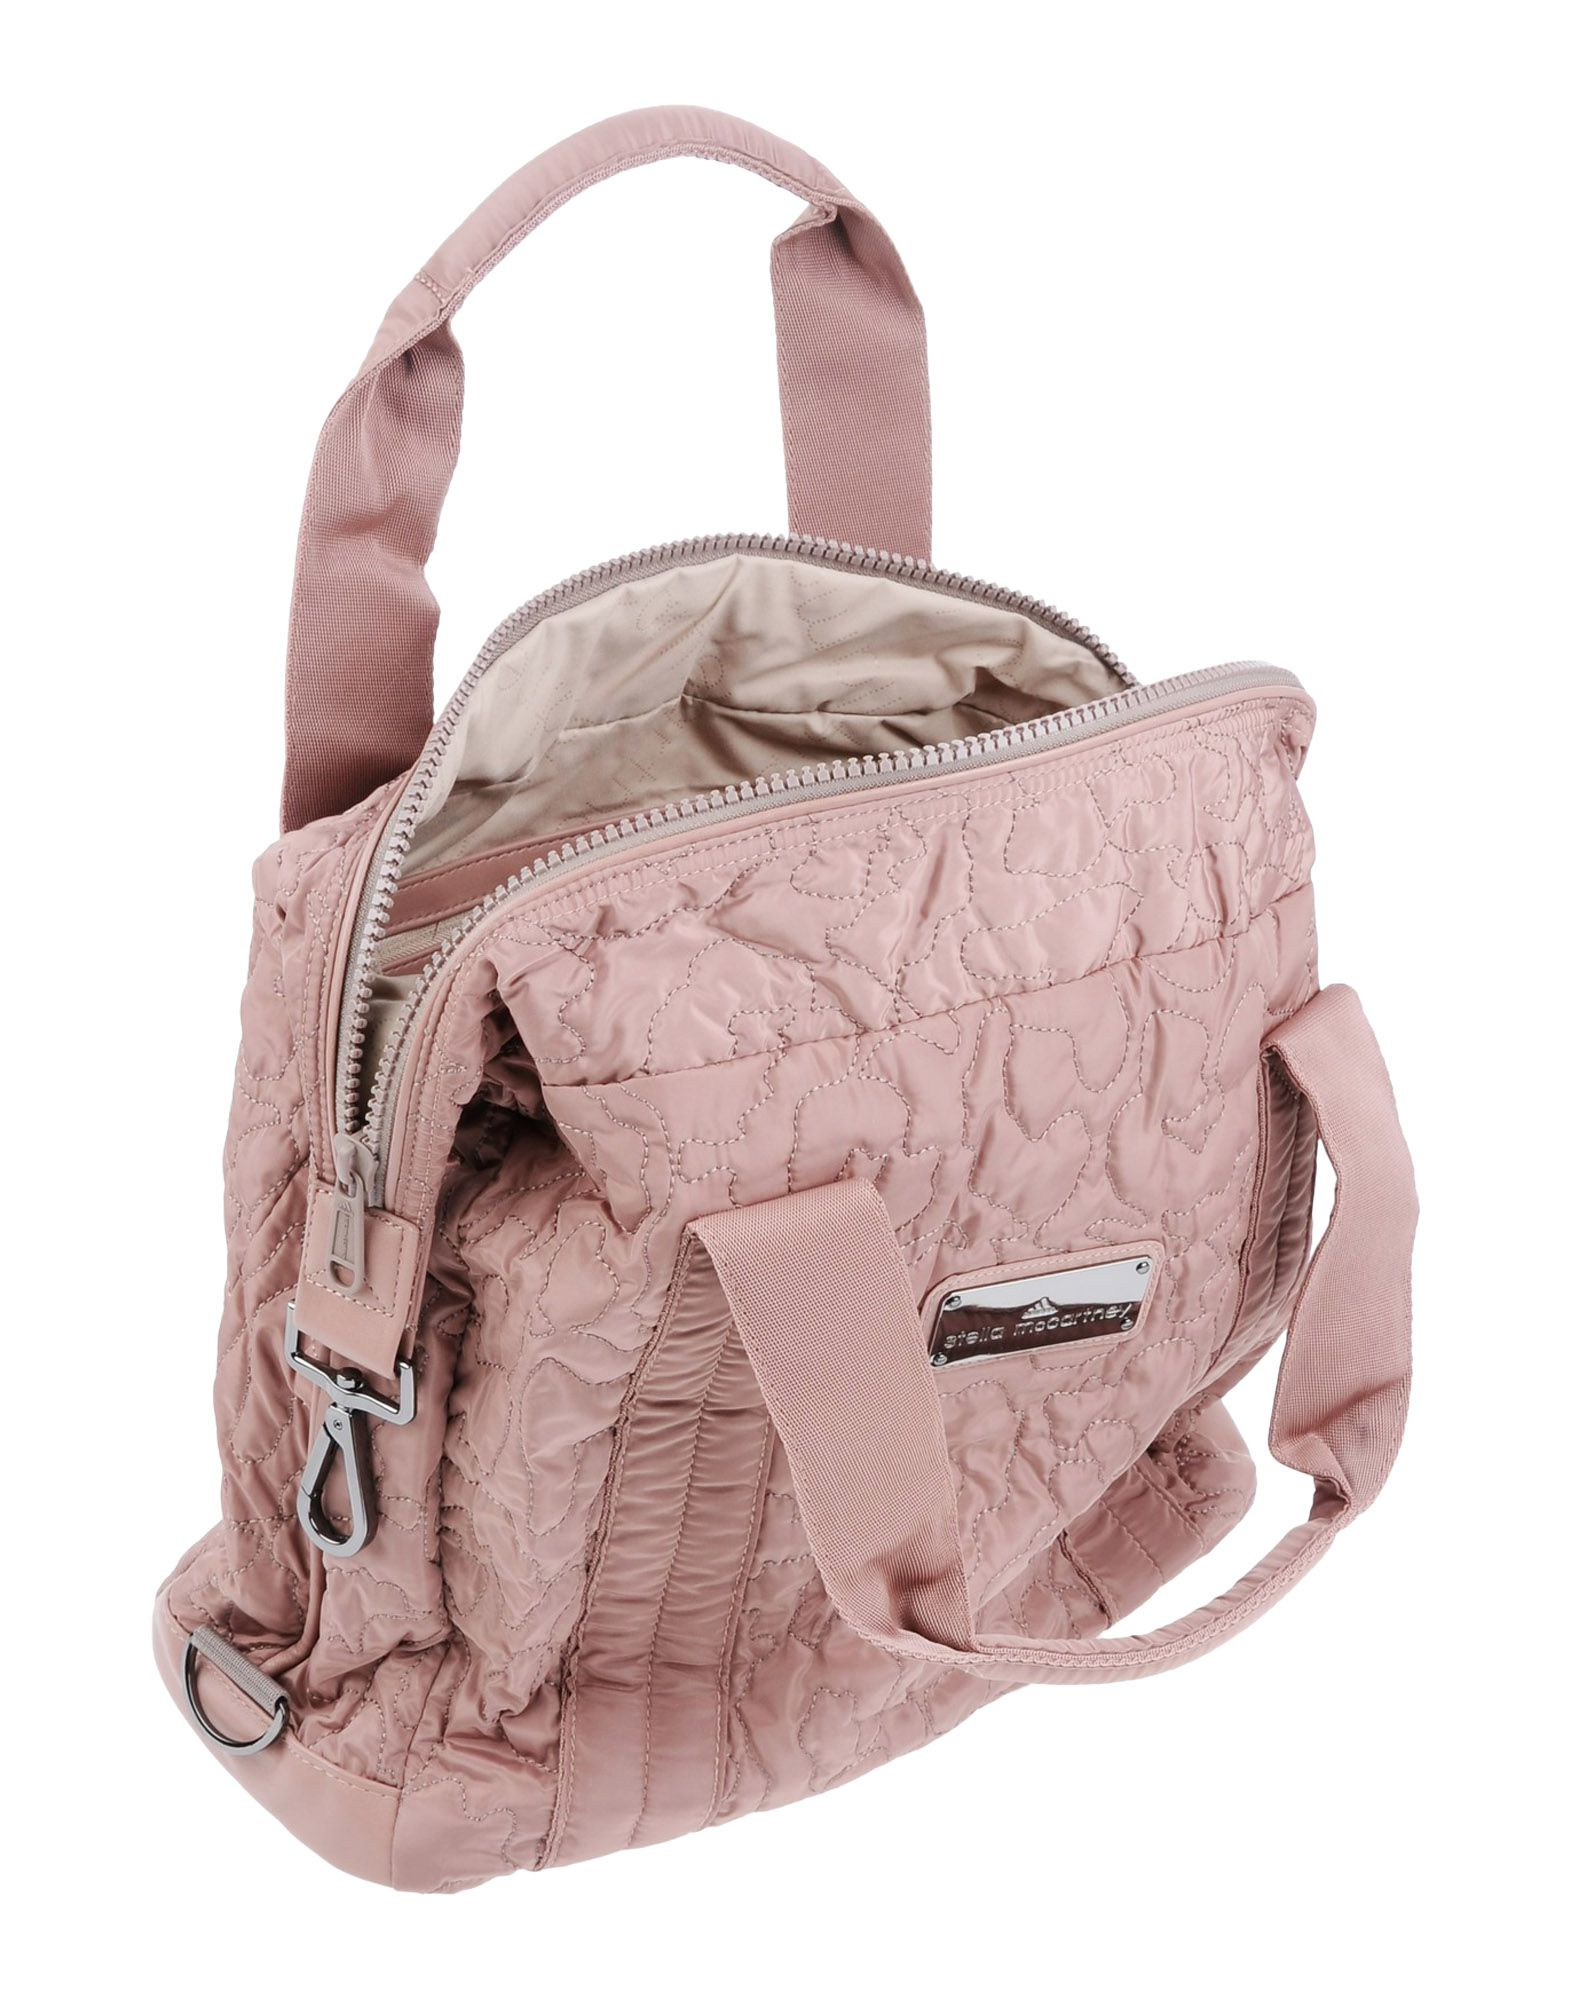 15c76a7819 adidas By Stella McCartney Medium Quilted Gym Bag in Pink - Lyst